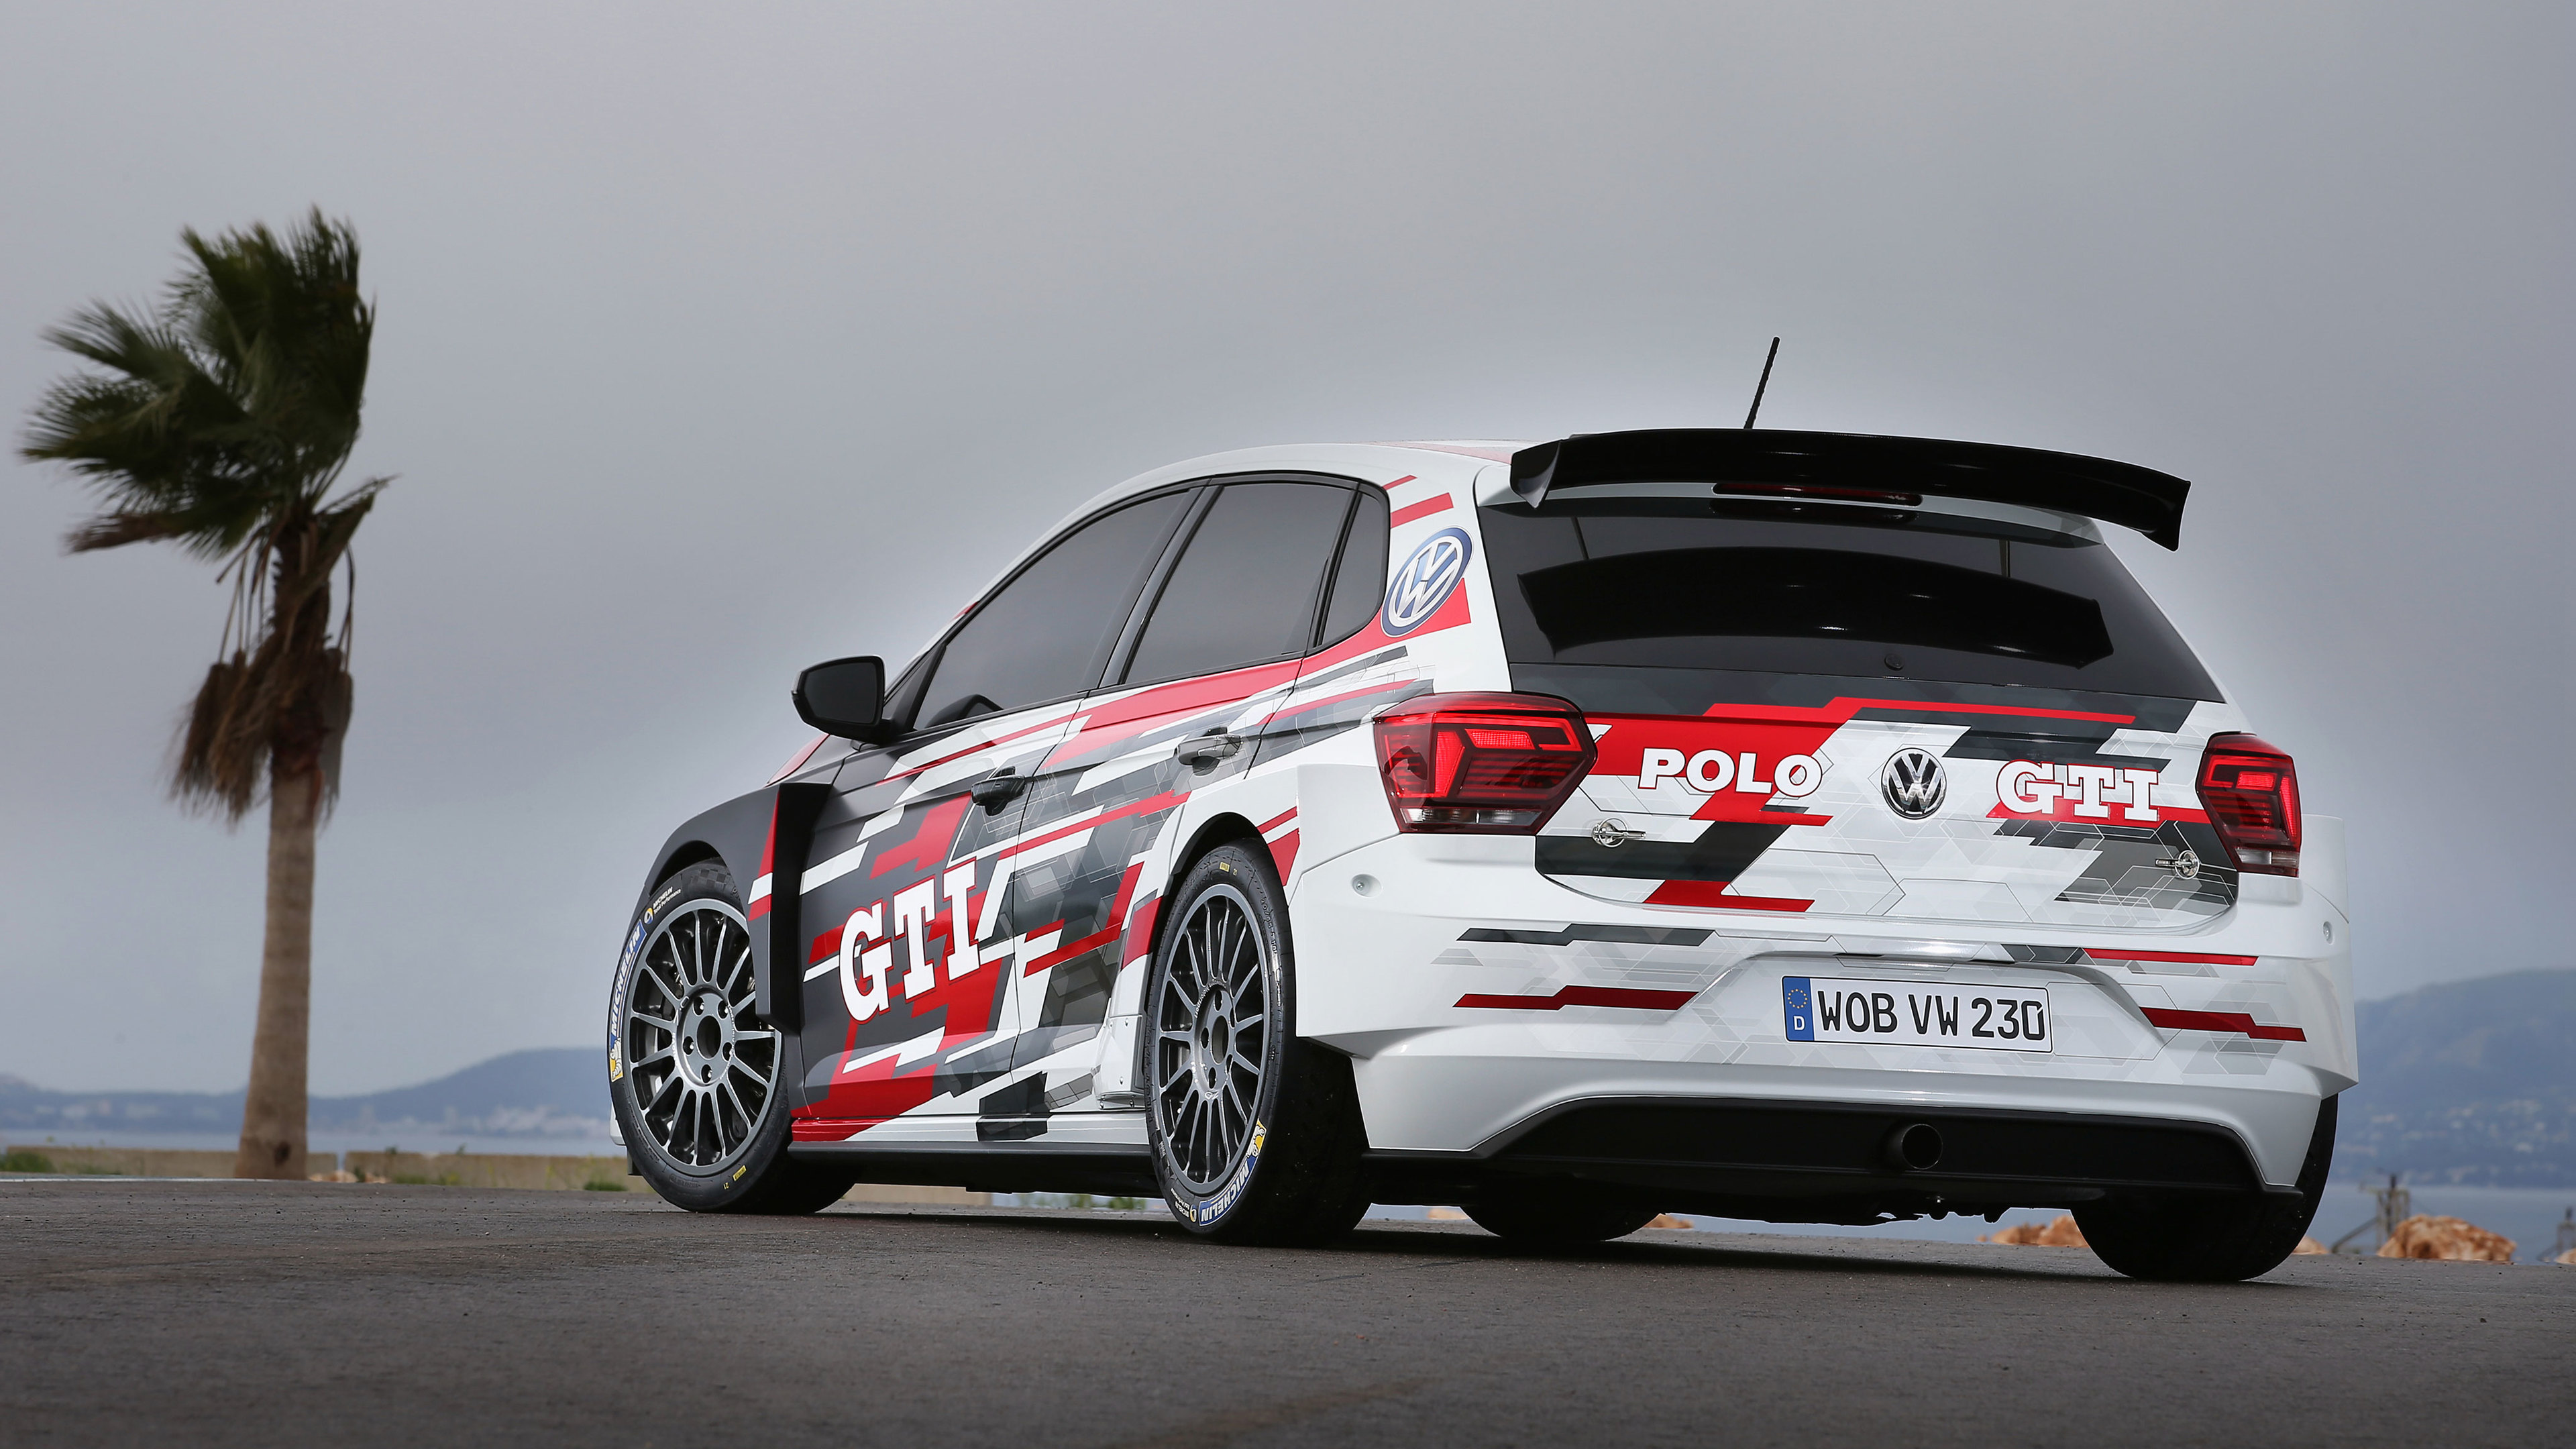 2018 volkswagen polo gti r5 4k 1539110779 - 2018 Volkswagen Polo GTI R5 4k - volkswagen wallpapers, volkswagen polo gti wallpapers, hd-wallpapers, cars wallpapers, 4k-wallpapers, 2018 cars wallpapers